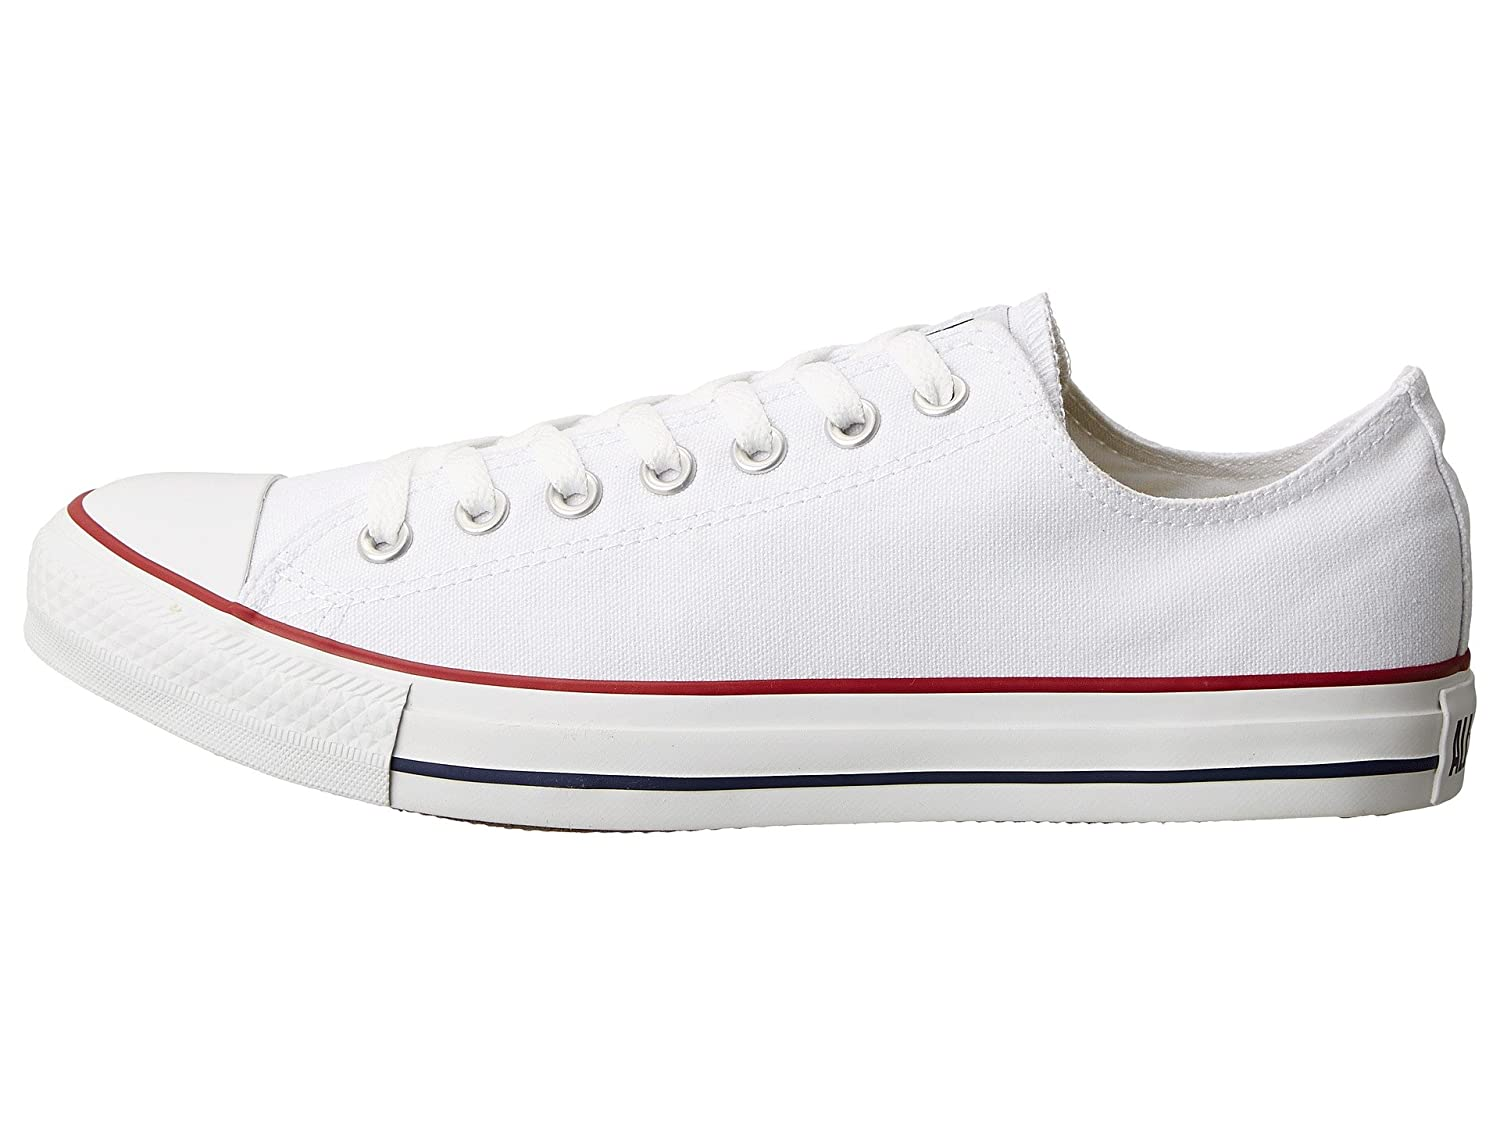 (Optique-blanc) Converse Chuck Taylor All Star Slip On Ox, paniers mode mixte adulte